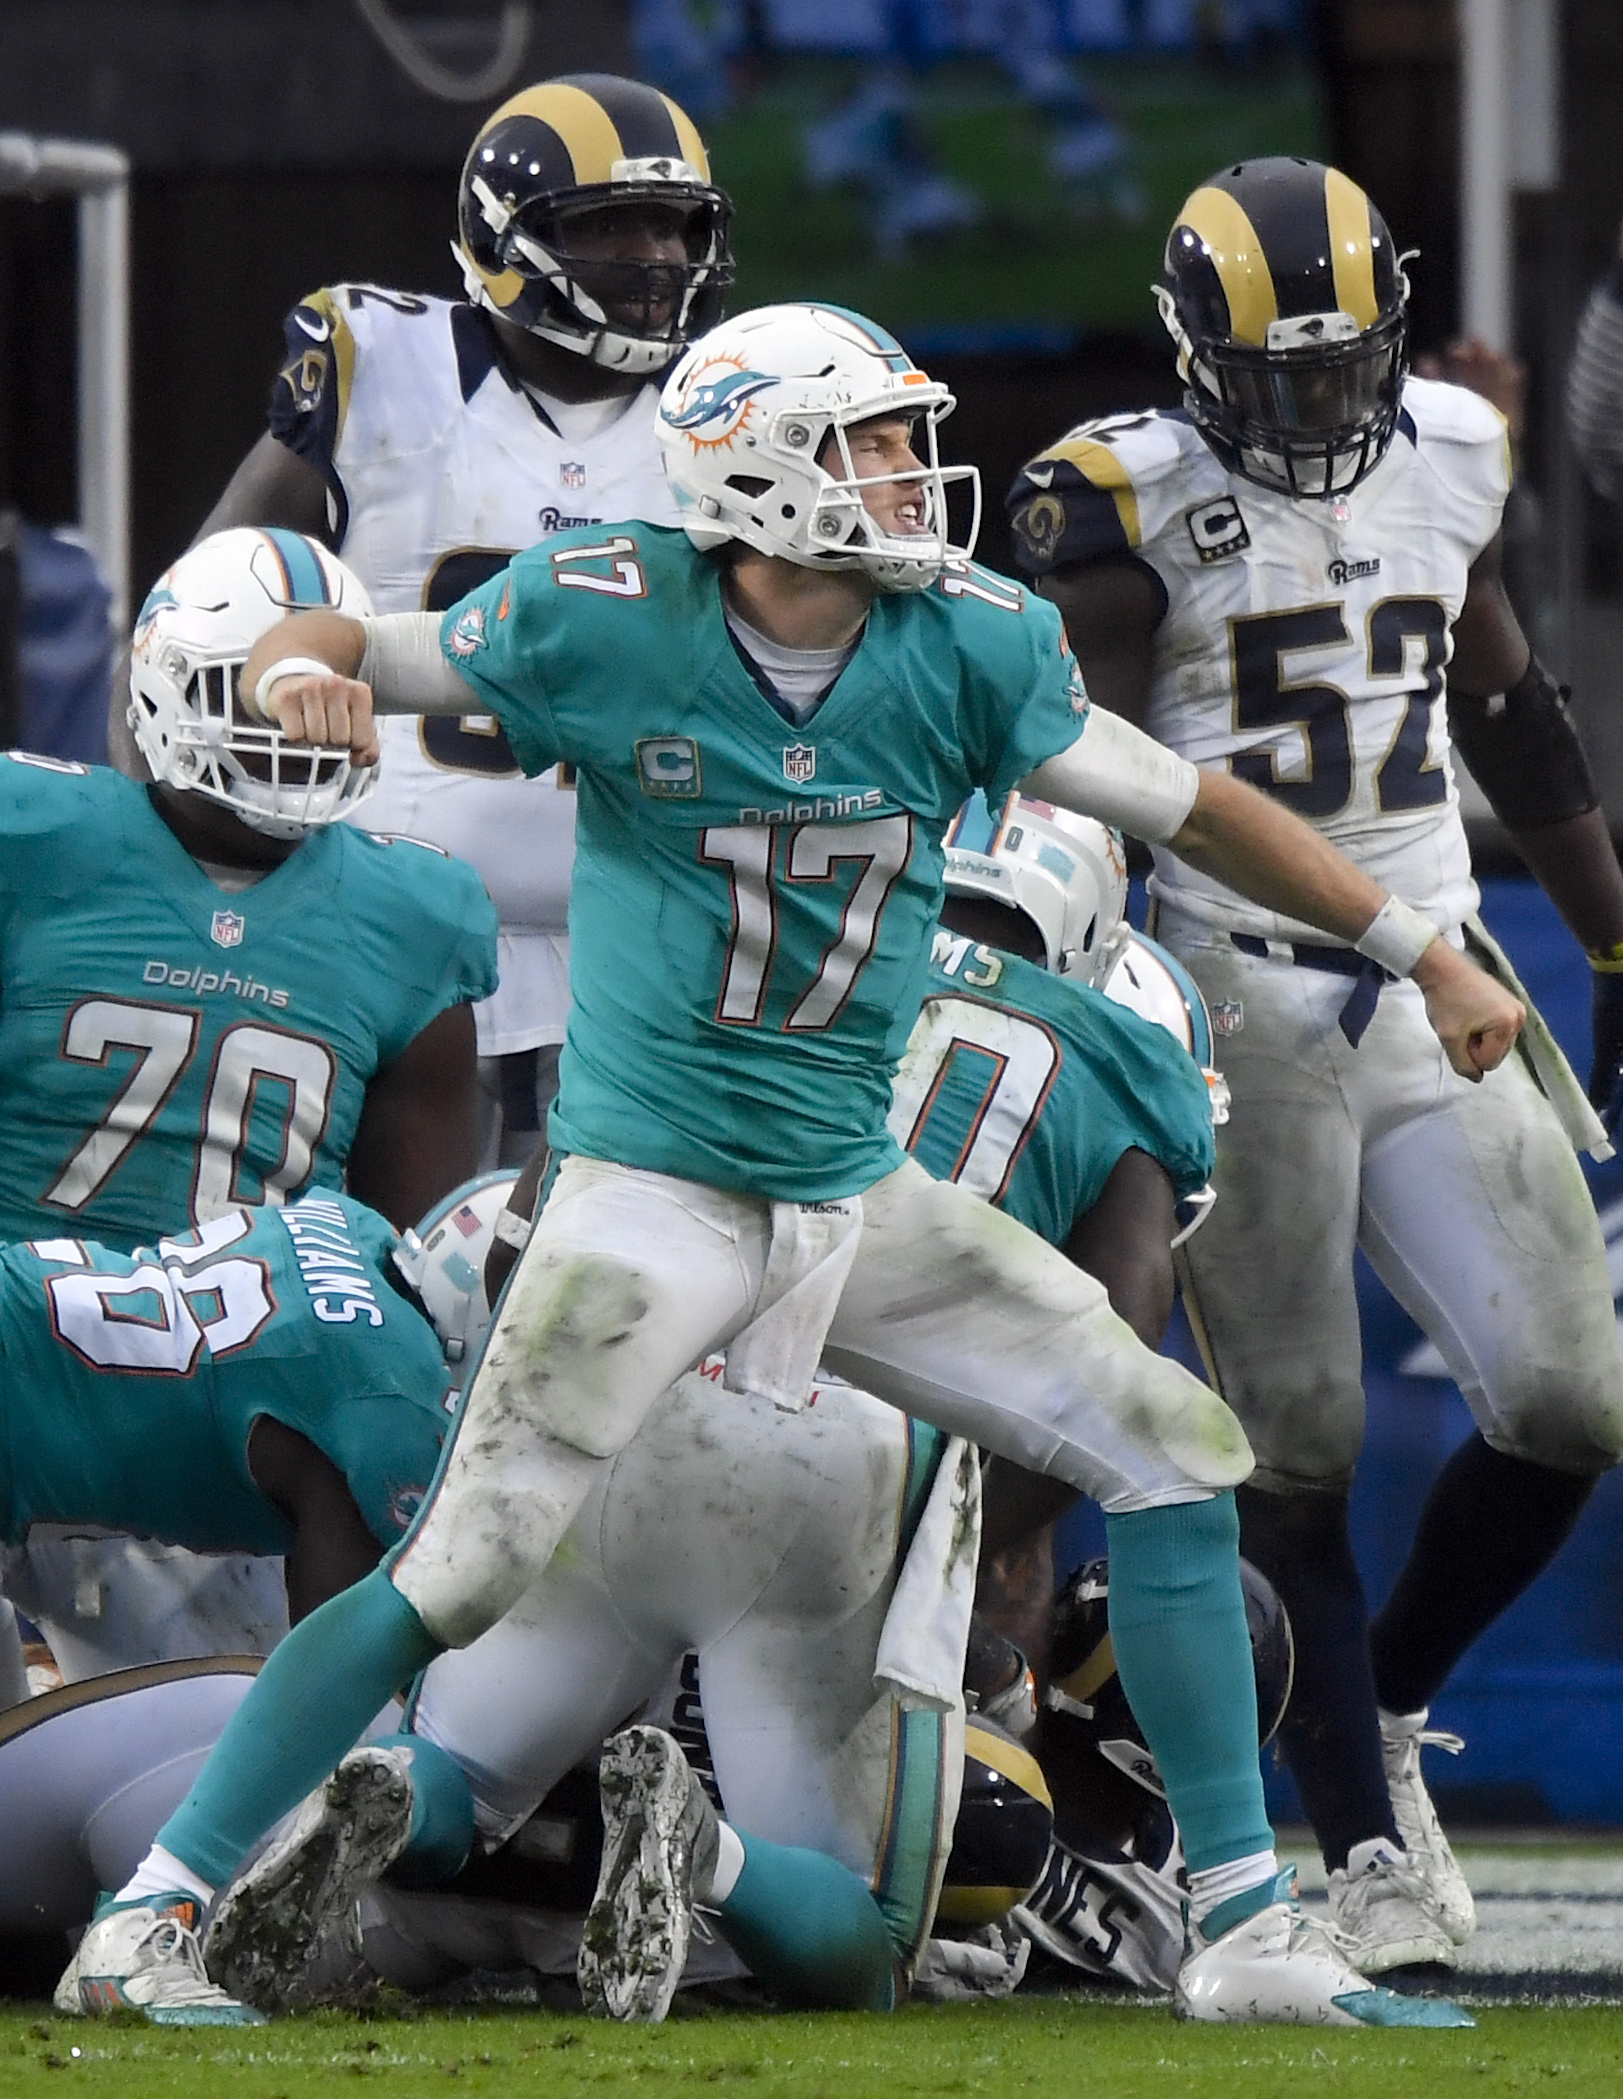 Miami Dolphins quarterback Ryan Tannehill celebrates after their touchdown against the Los Angeles Rams during the second half of an NFL football game Sunday, Nov. 20, 2016, in Los Angeles. (AP Photo/Mark J. Terrill)